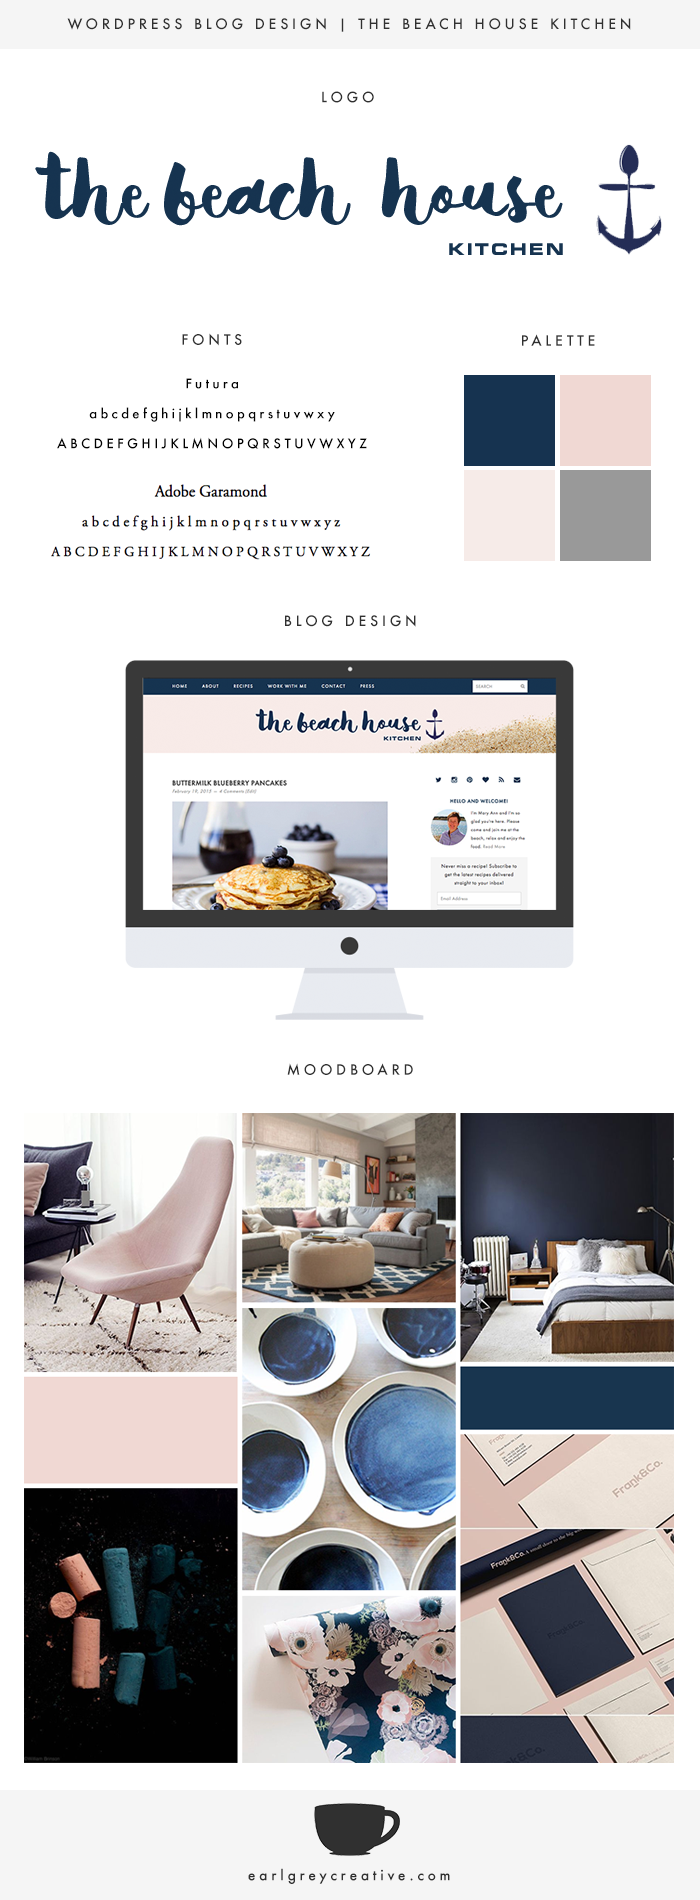 Wordpress Blog Design for The Beach House Kitchen | Earl Grey Creative